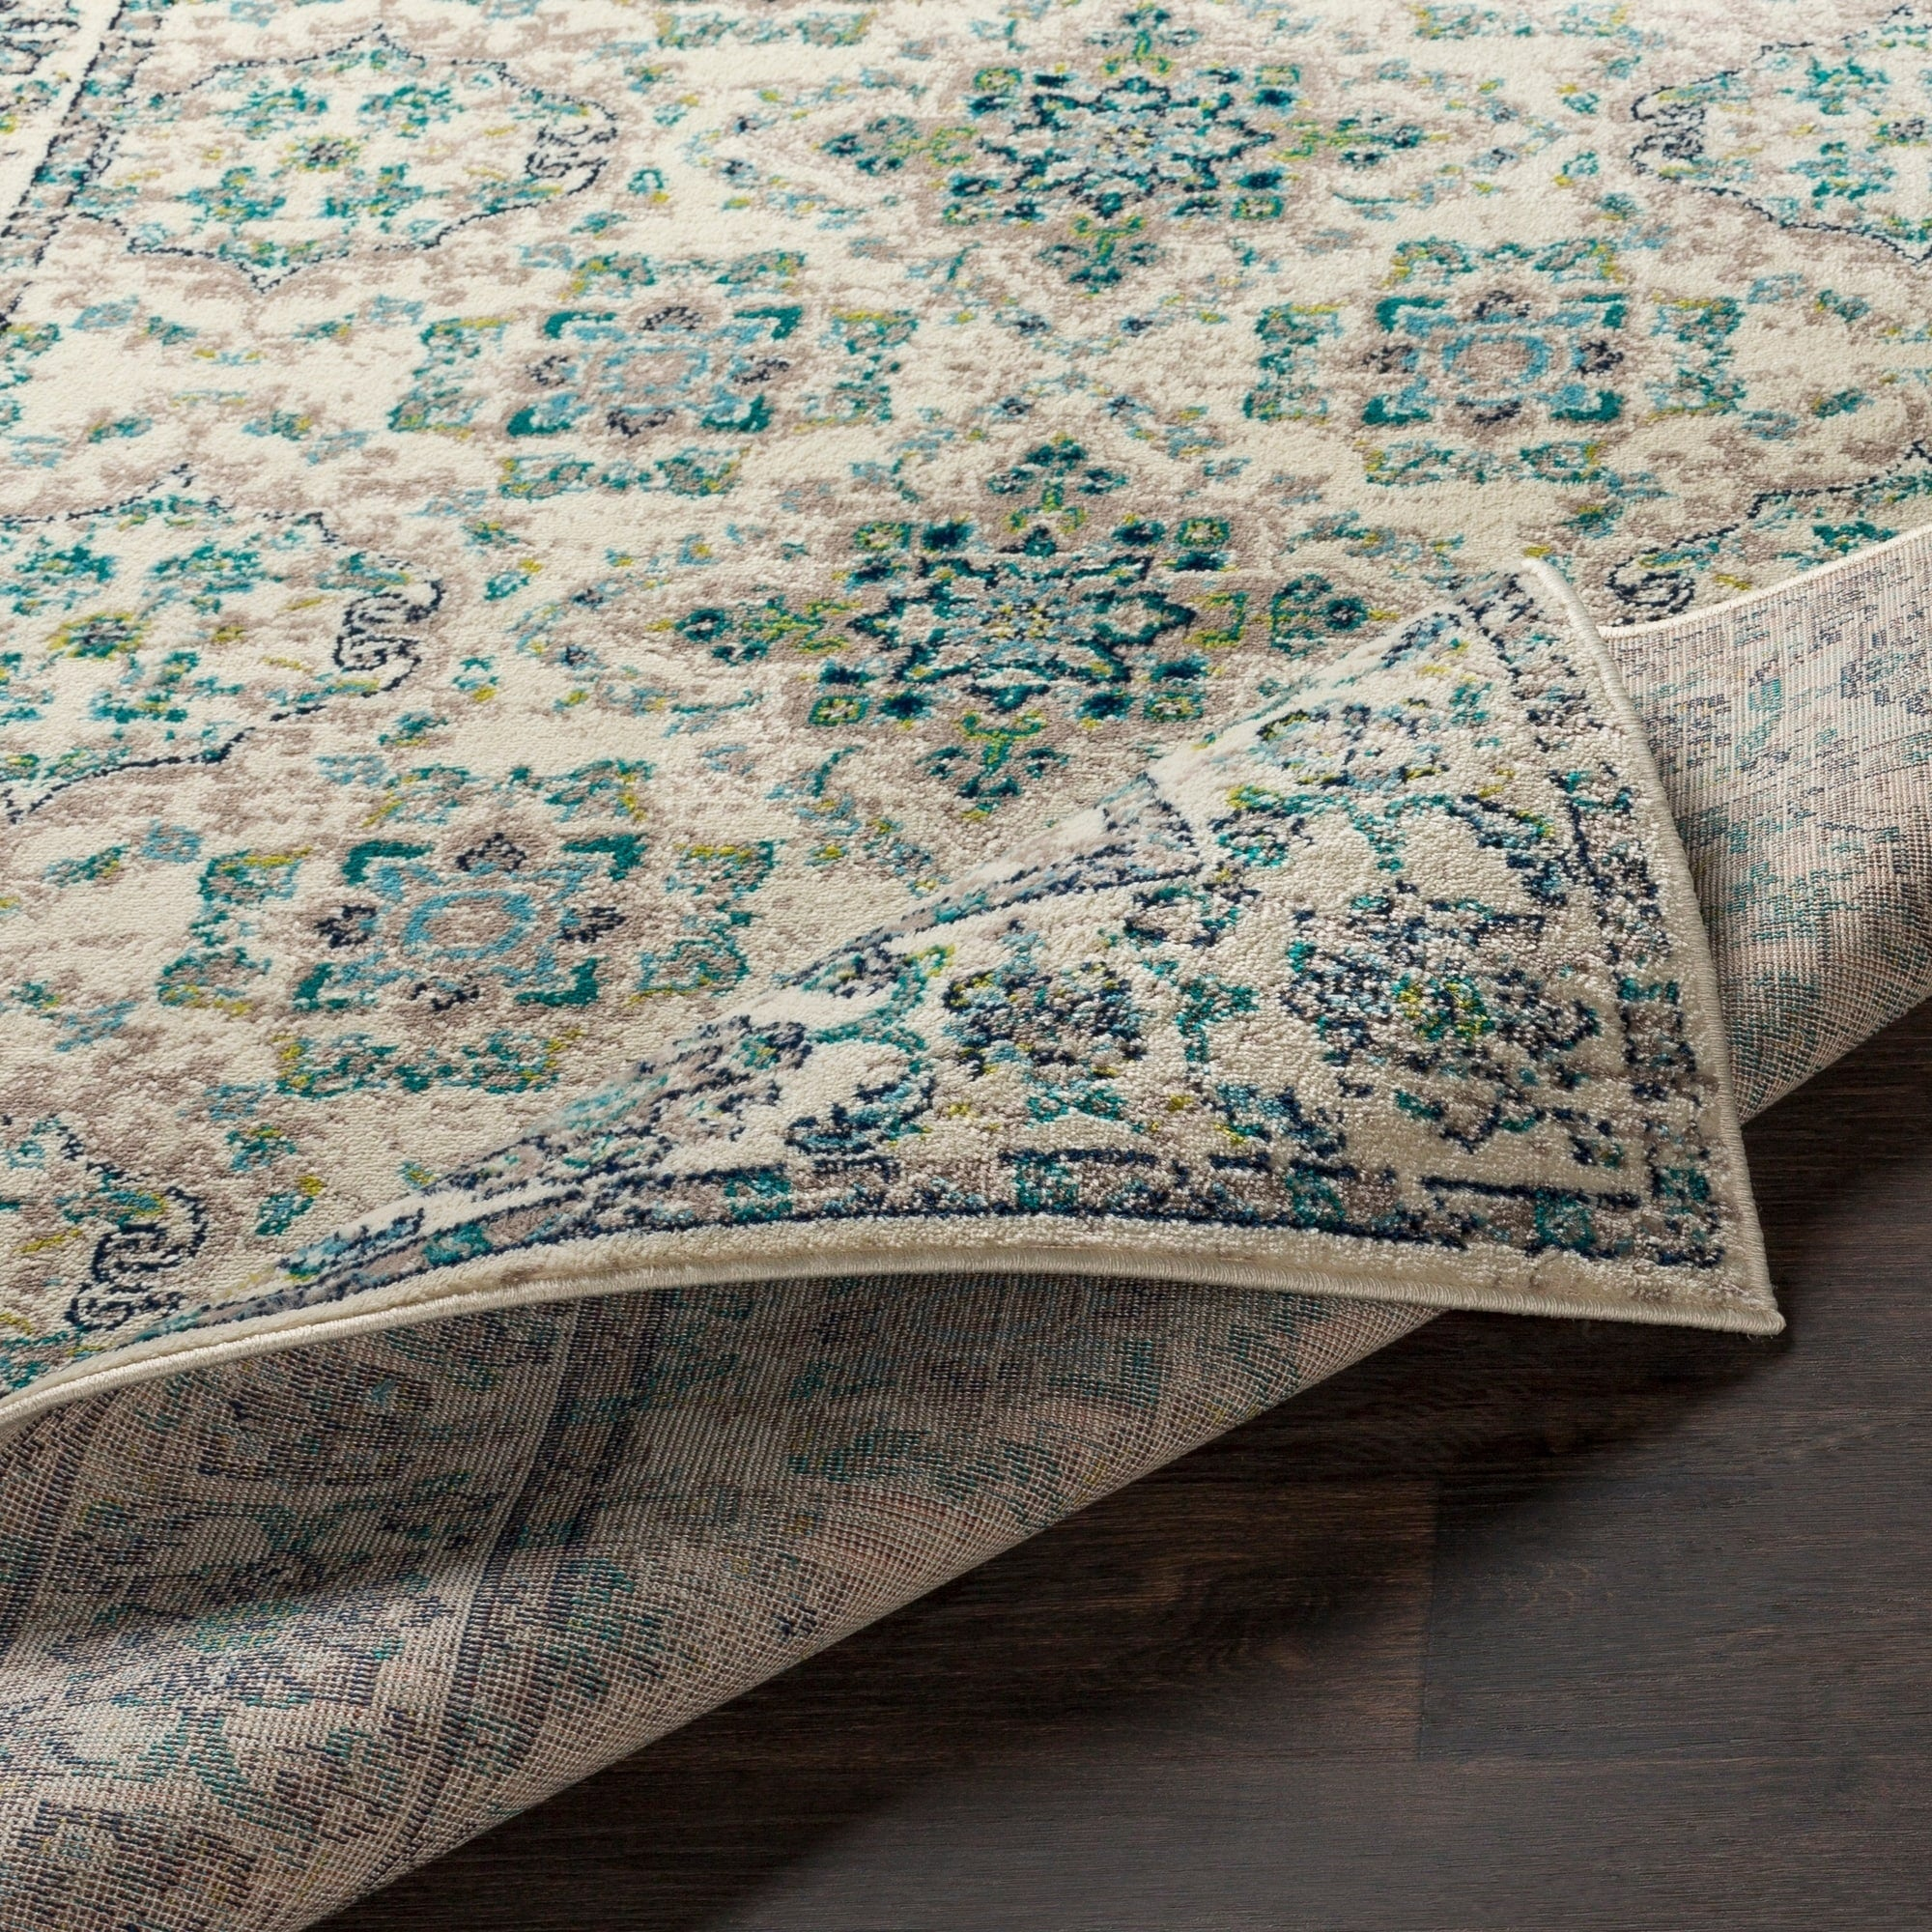 Transitional Border Soft Teal Lime Ivory Area Rug Modern Rugs And Decor